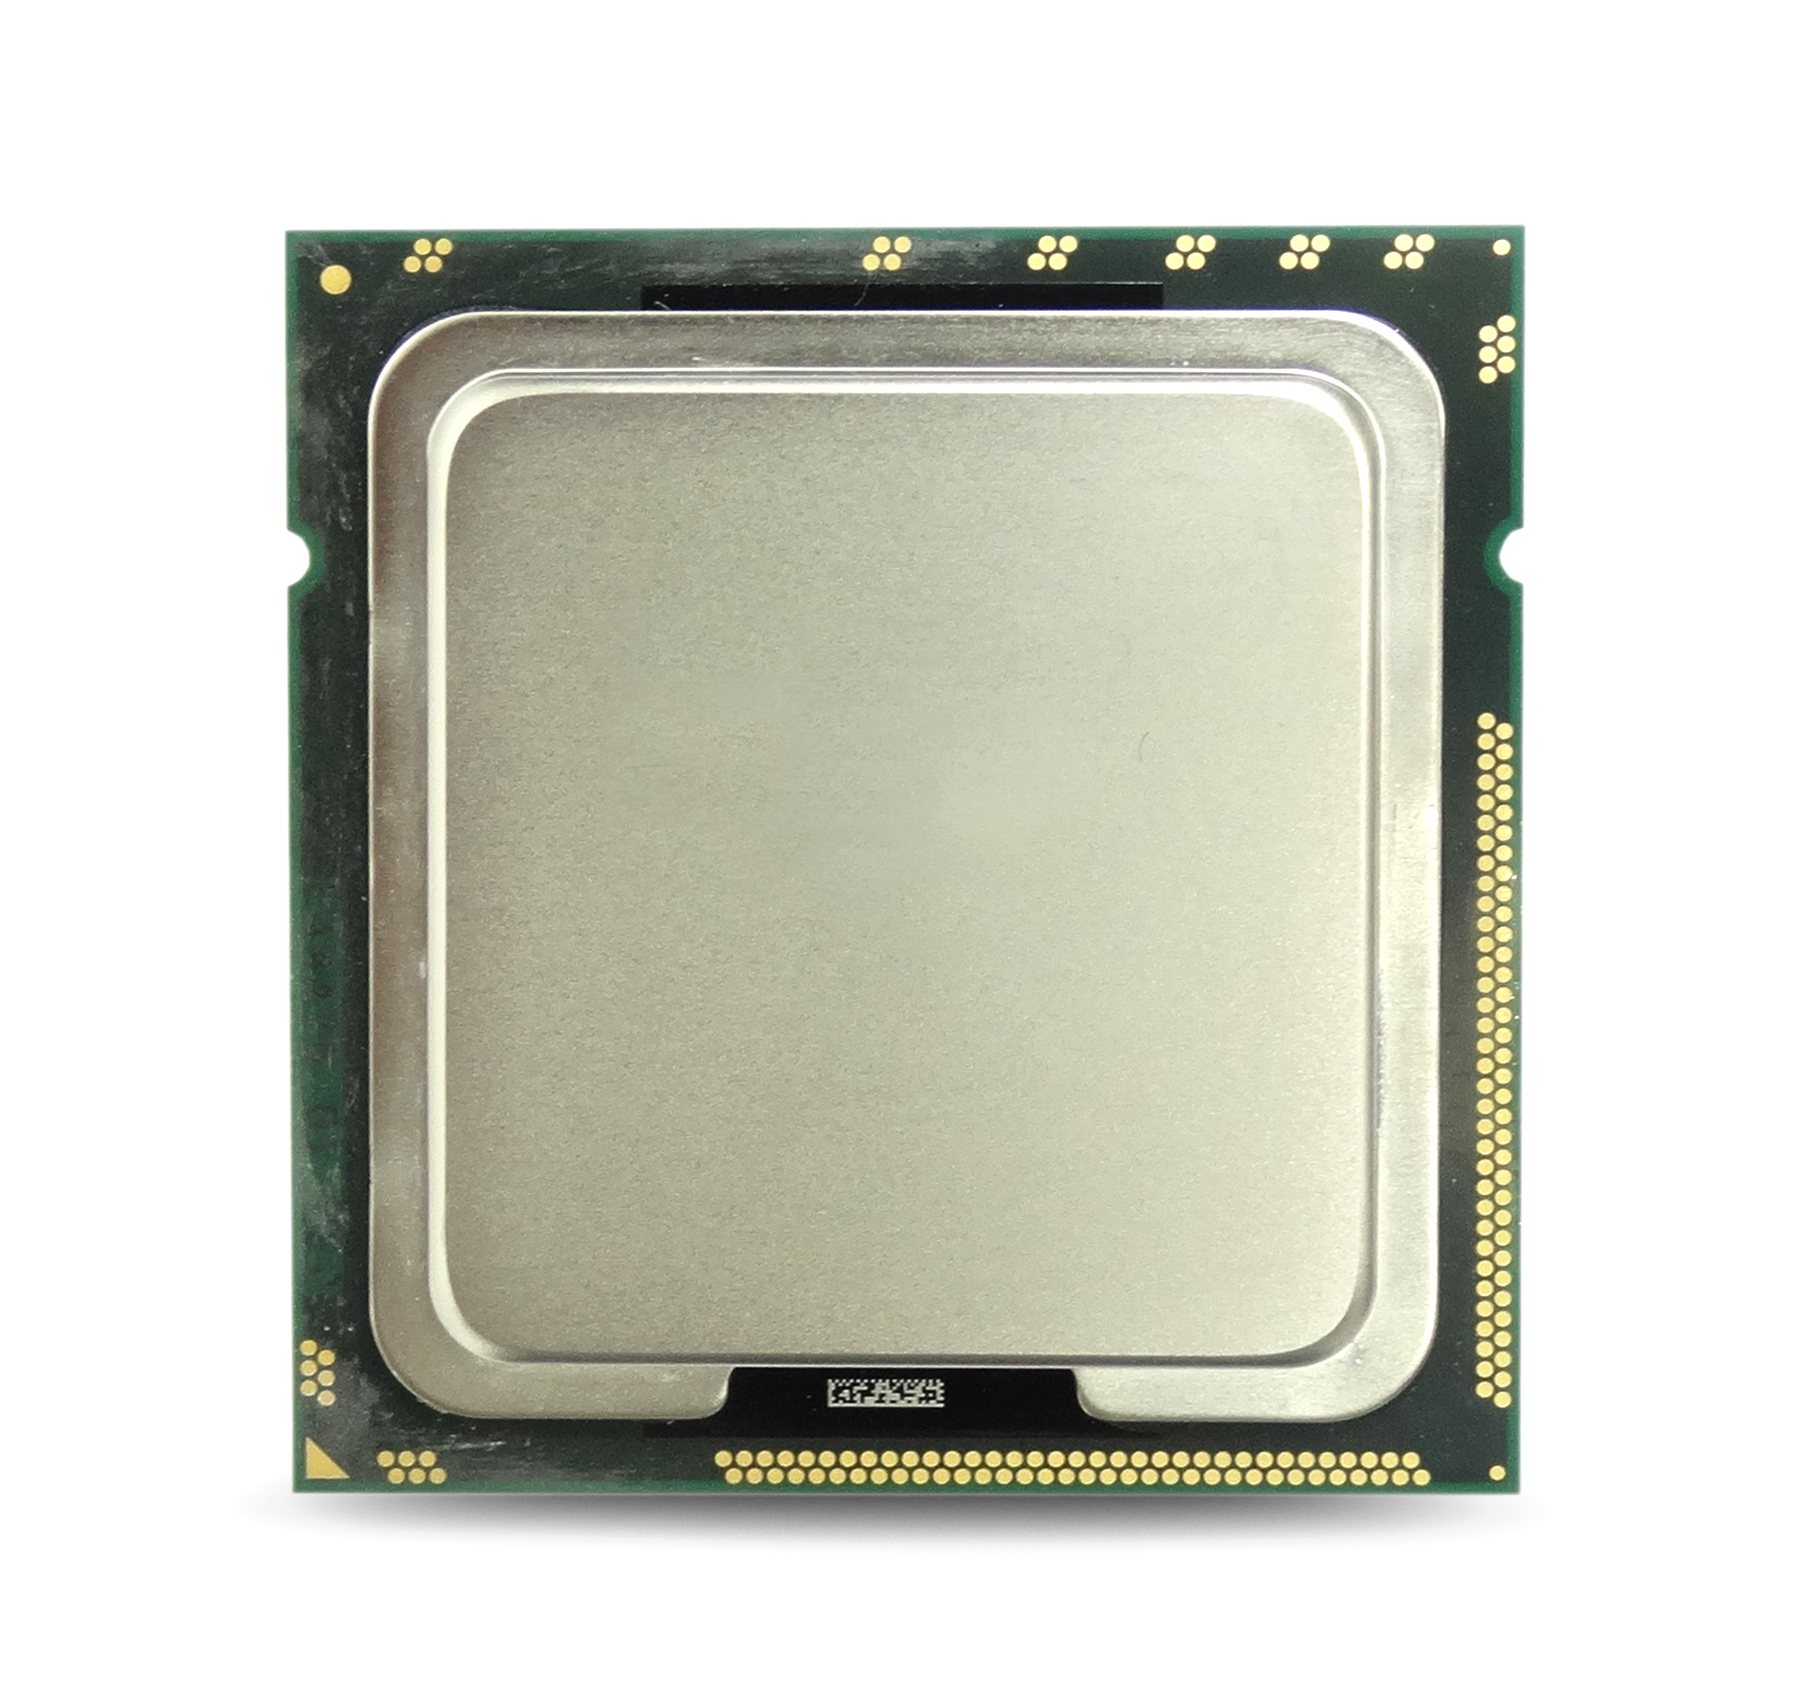 SLBMS Intel Pentium 2.8 GHz Dual Core Socket LGA1156 Processor (SLBMS)